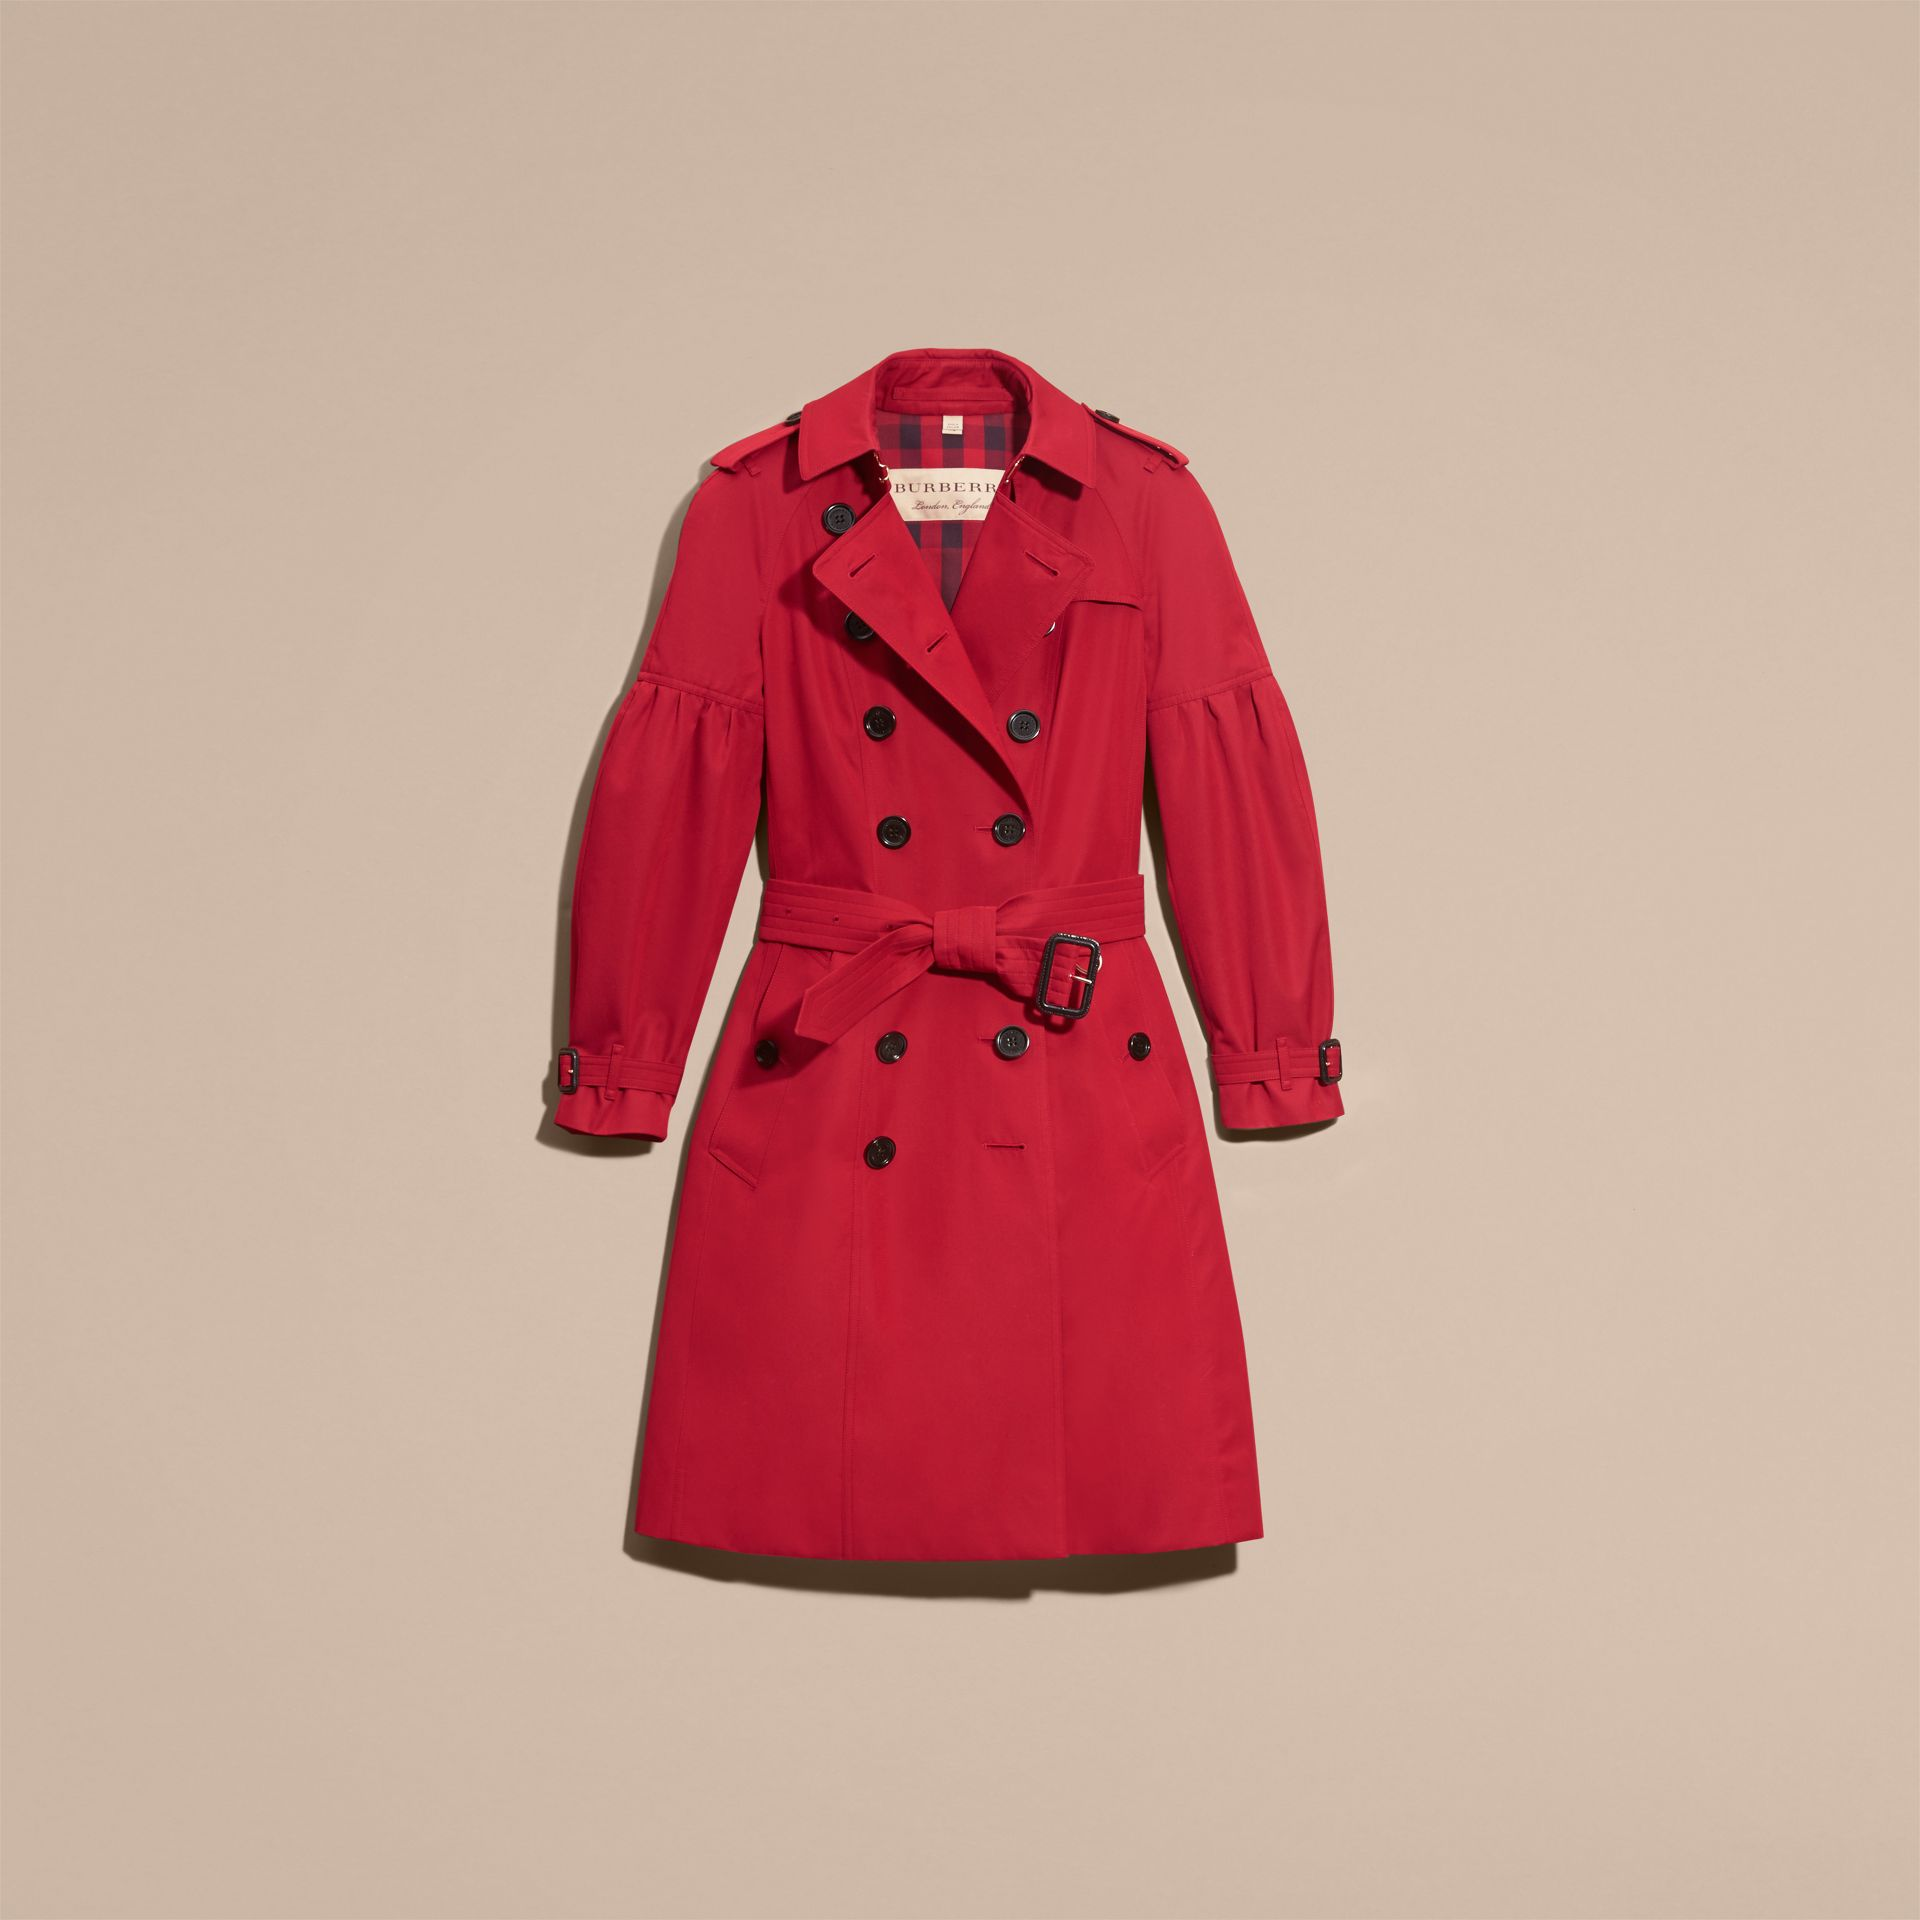 Parade red Cotton Gabardine Trench Coat with Puff Sleeves Parade Red - gallery image 4